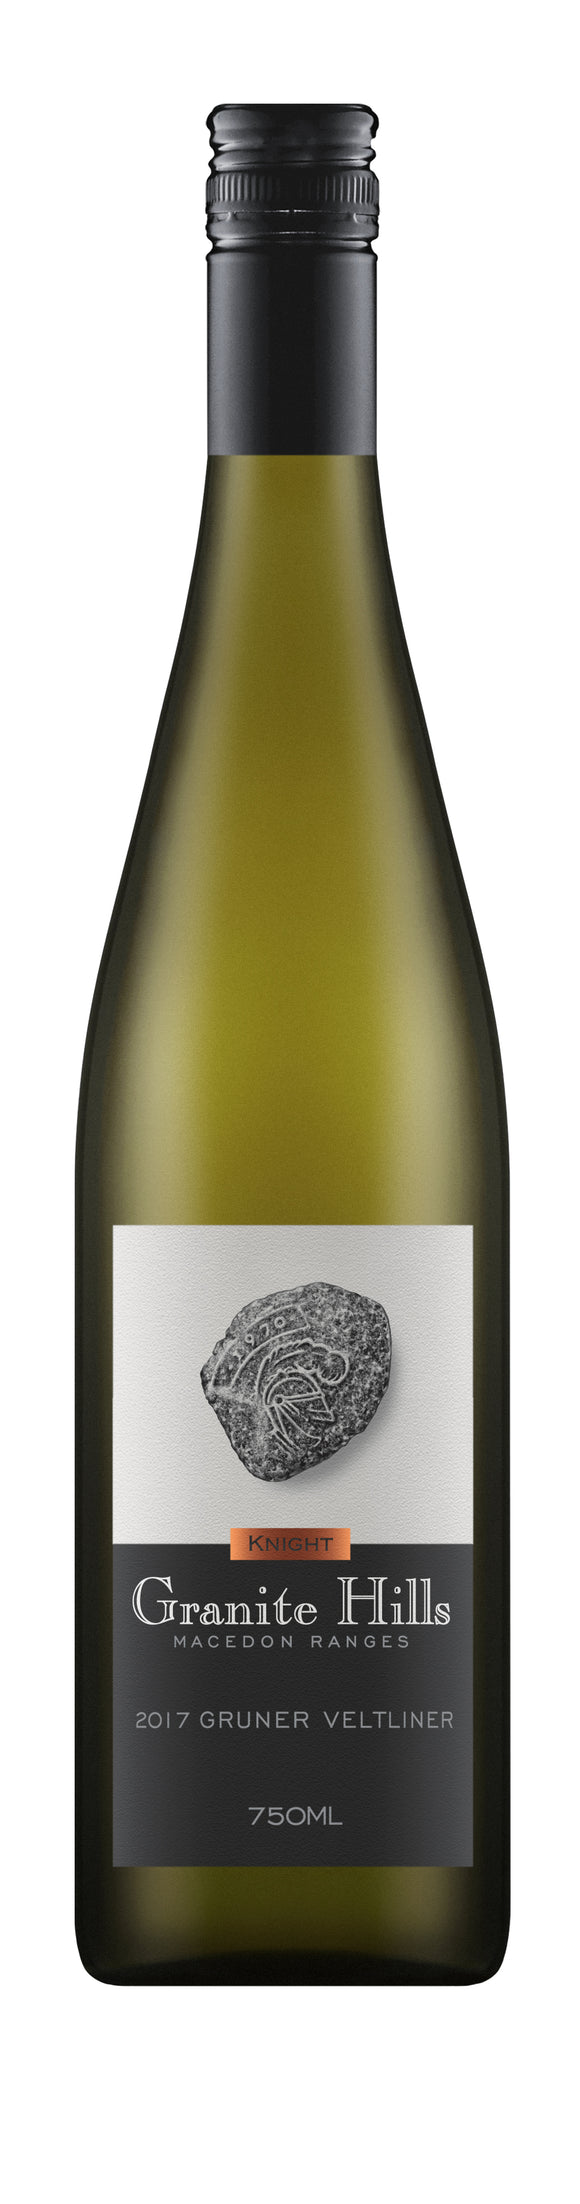 2018 Granite Hills Macedon Ranges Gruner Veltliner